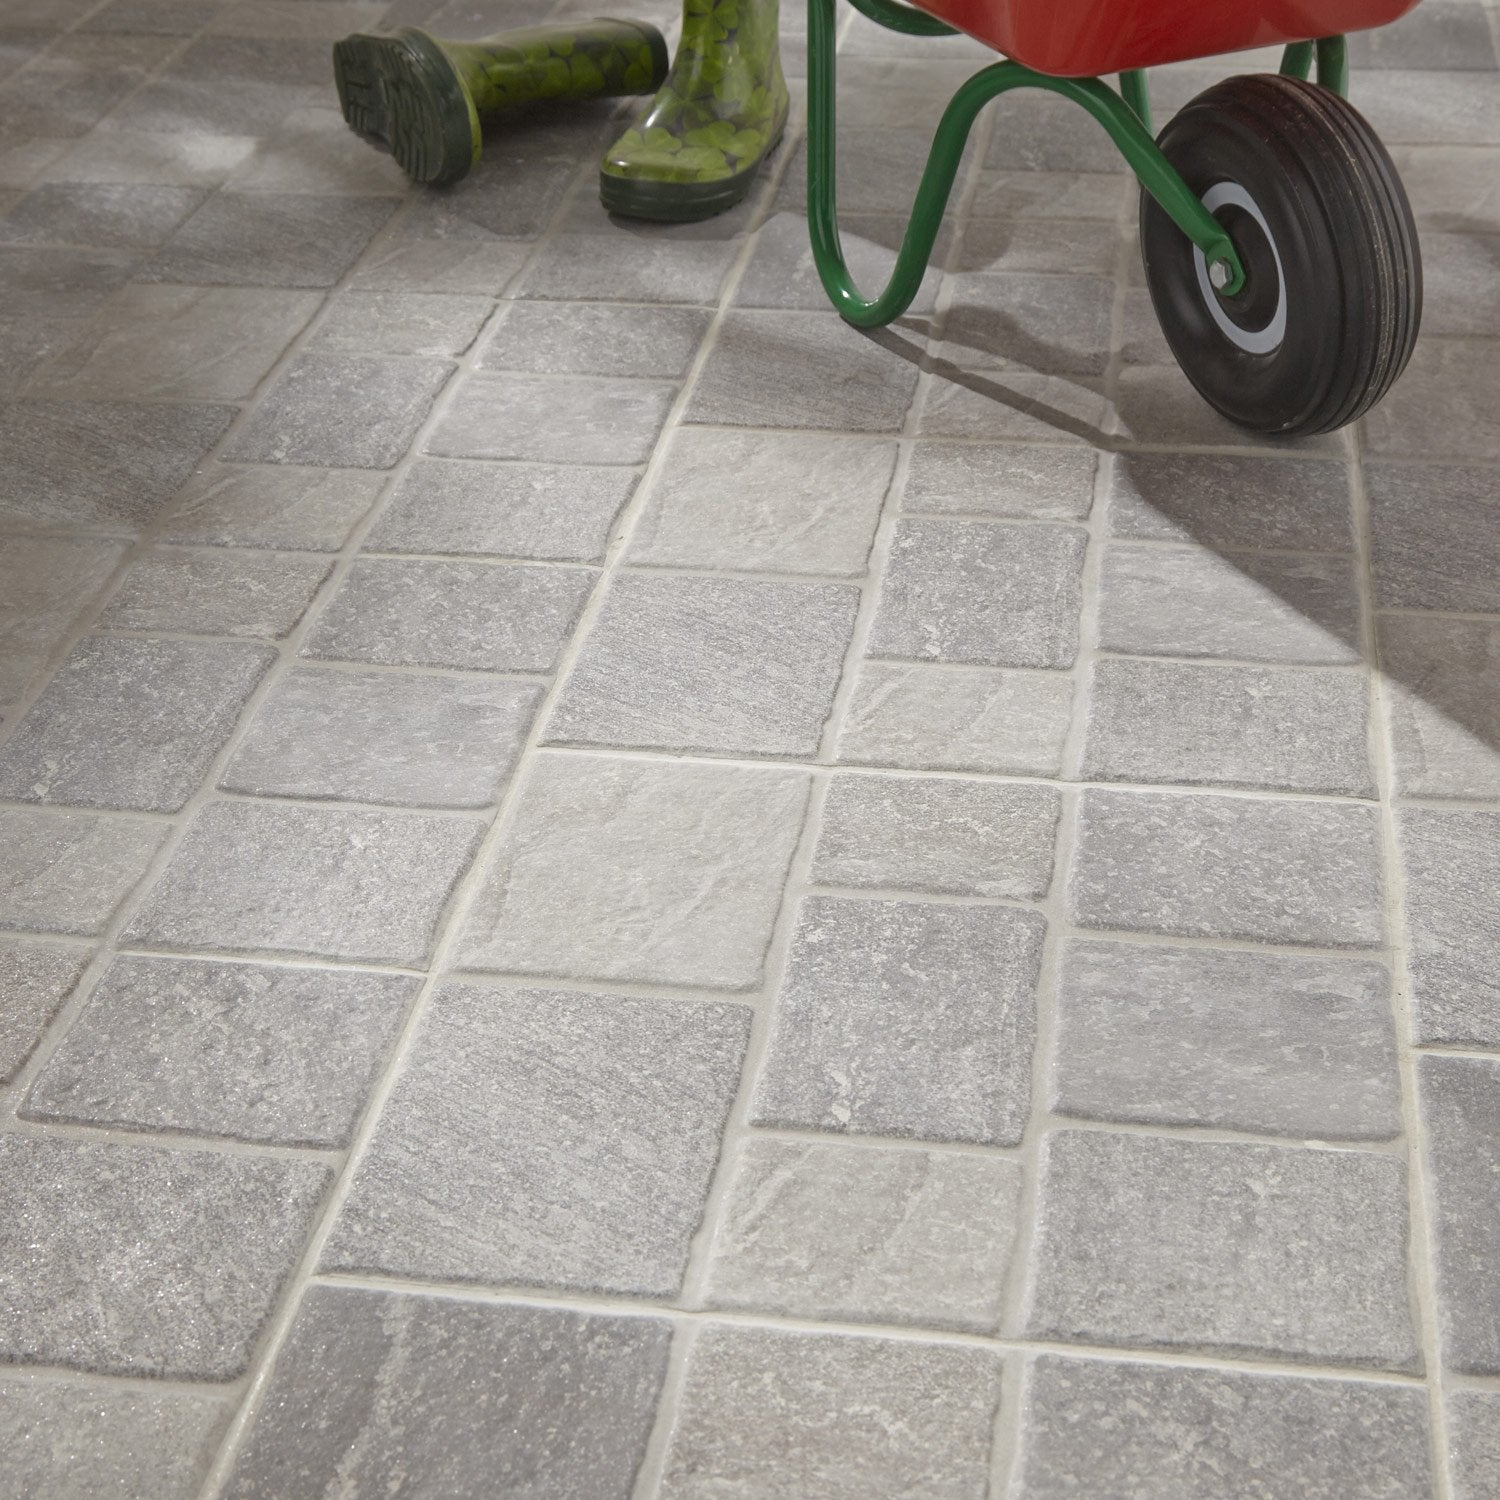 Carrelage sol gris effet pierre sanpietrini x cm for Carrelage clipsable leroy merlin